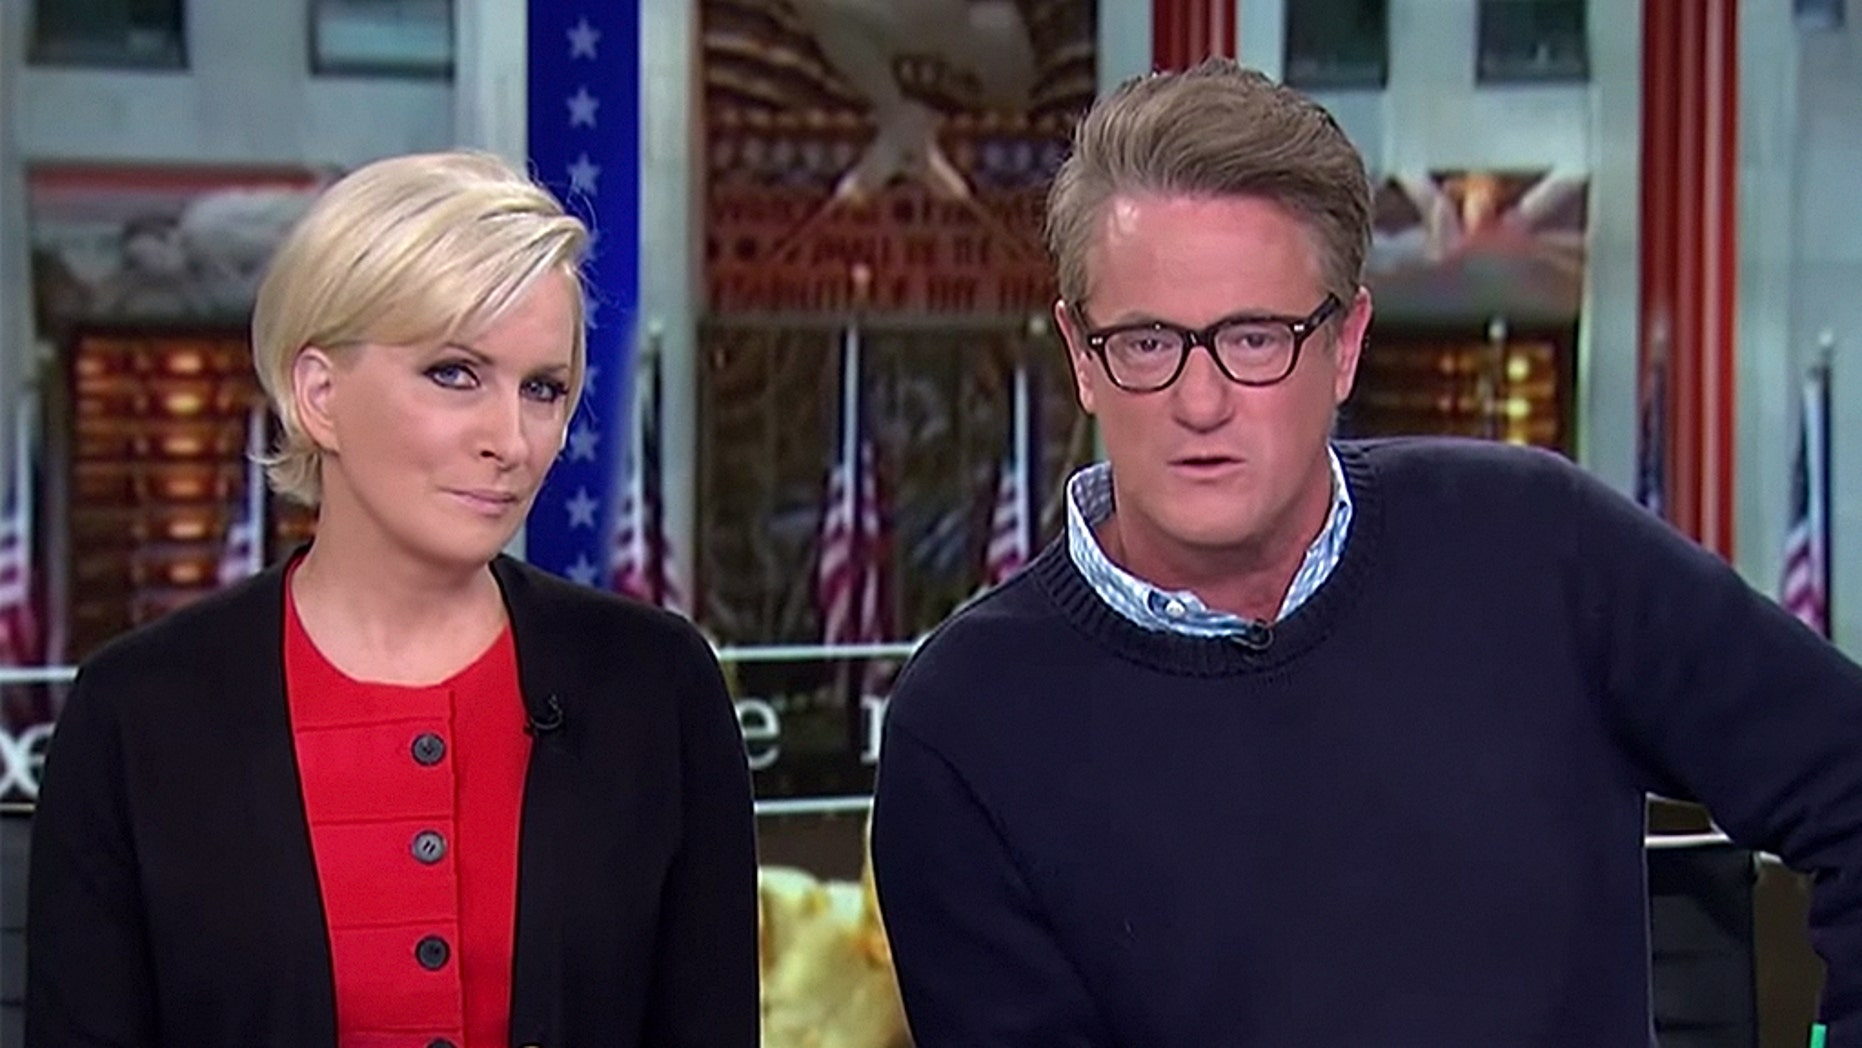 "MSNBC's Joe Scarborough declared Attorney General William Barr's reputation has been ""sullied"" just hours before he even gave the press conference, saying it's time to rethink the process how attorney generals are picked."